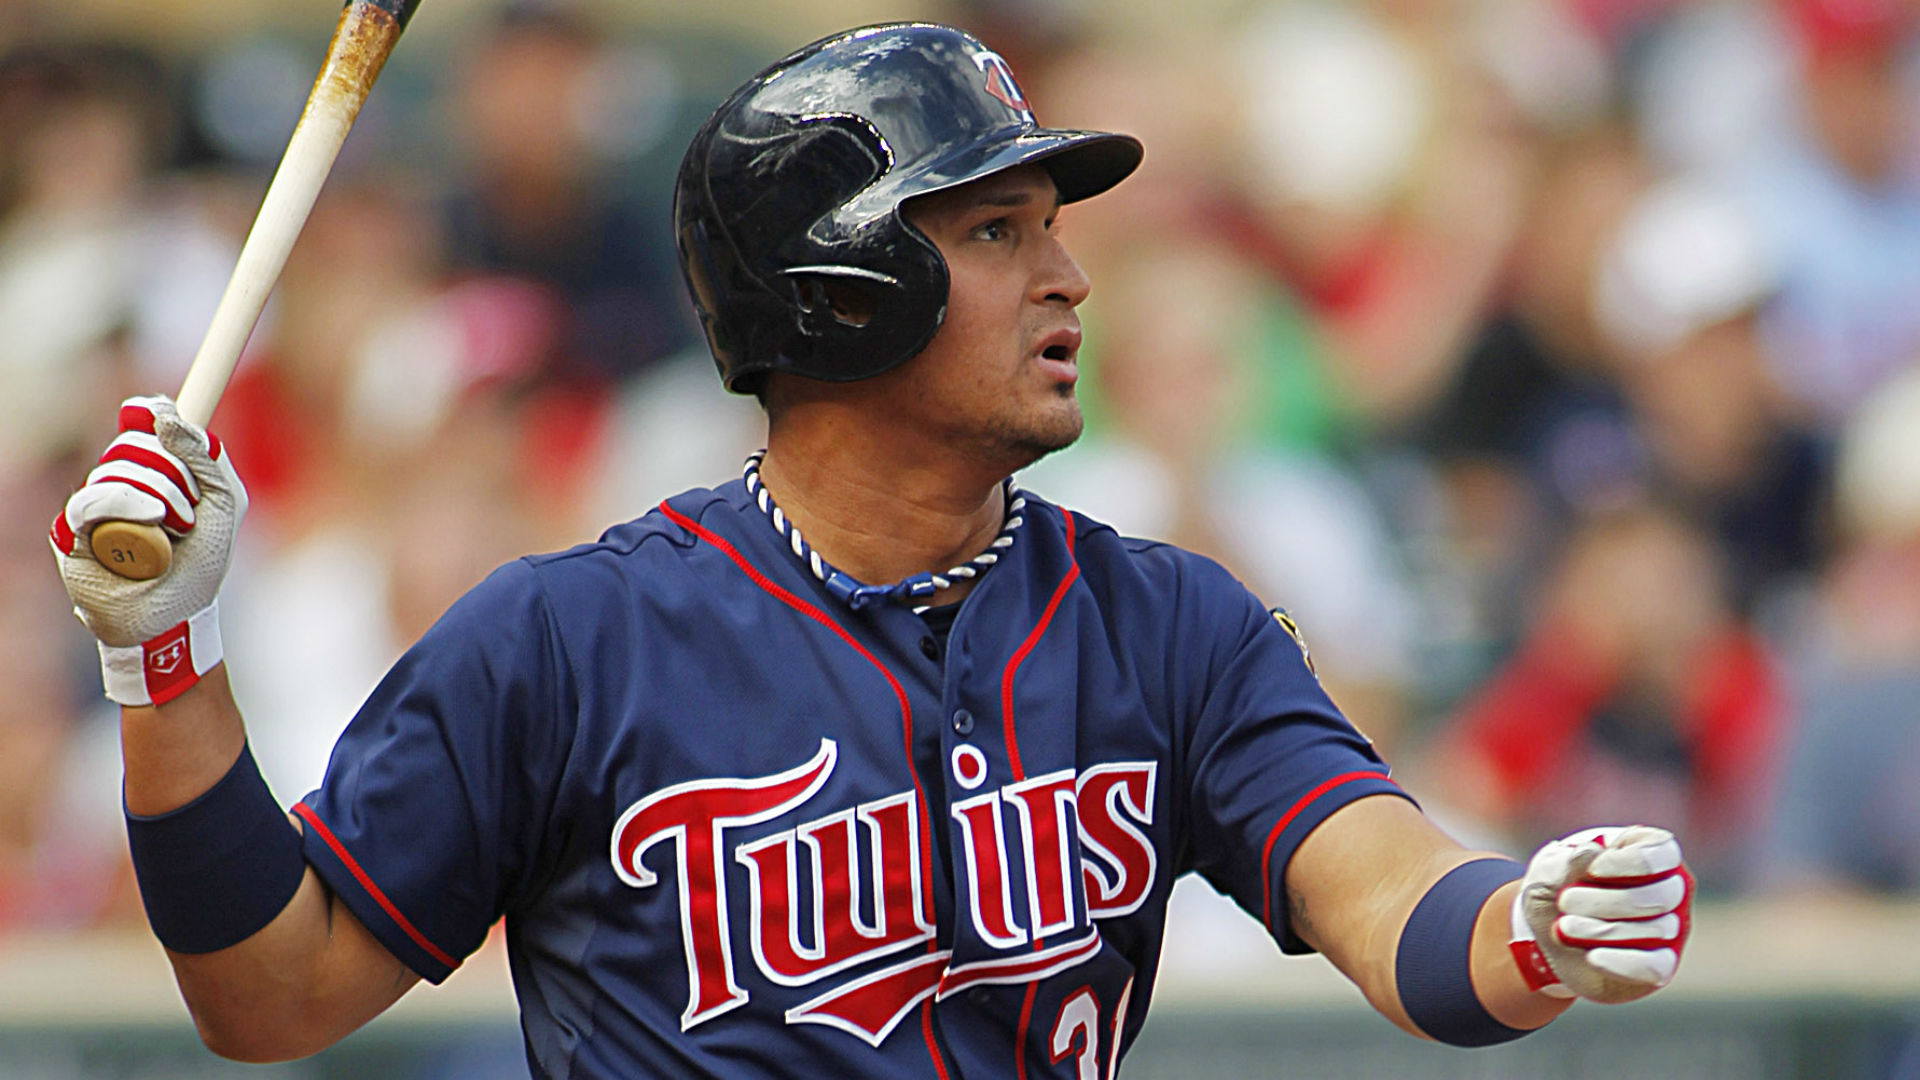 Fantasy baseball sleepers: Twins OF Oswaldo Arcia could provide late-round pop